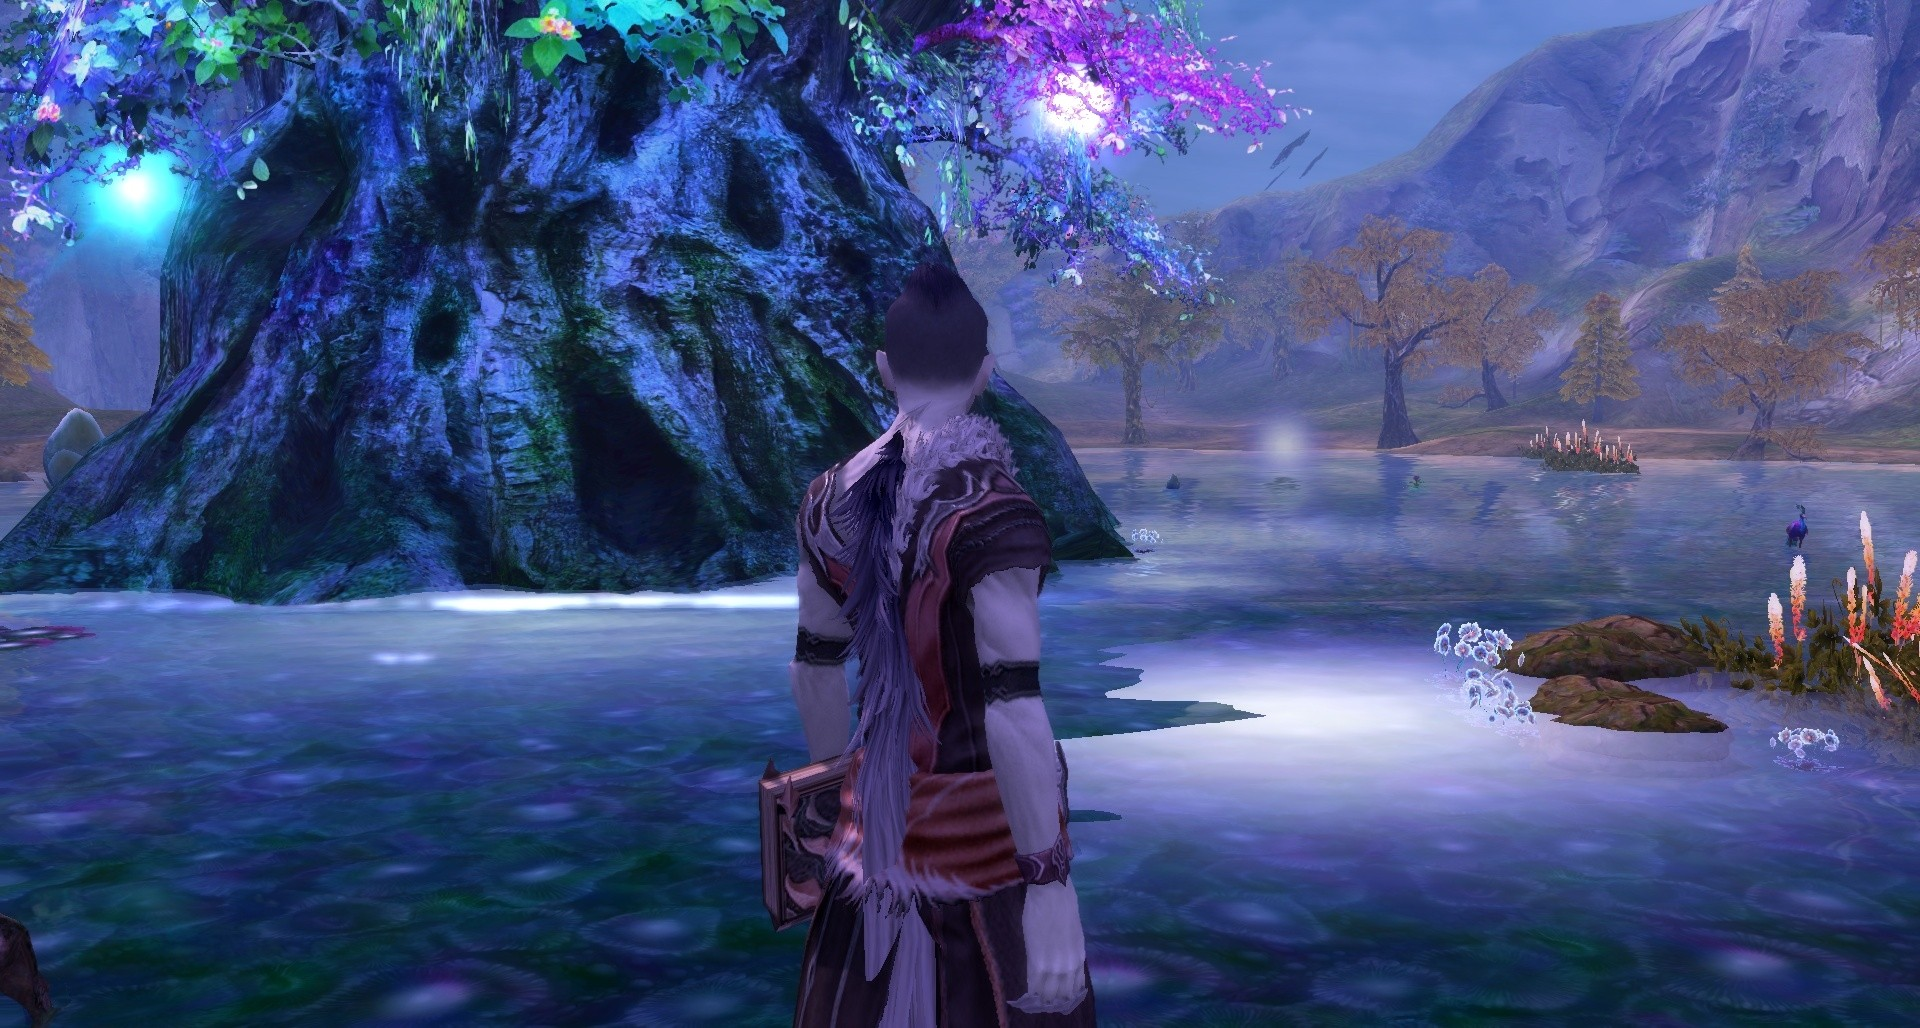 Aion - Water reflections are way nicer. Still feel like the game should have been like this right from launch, though.